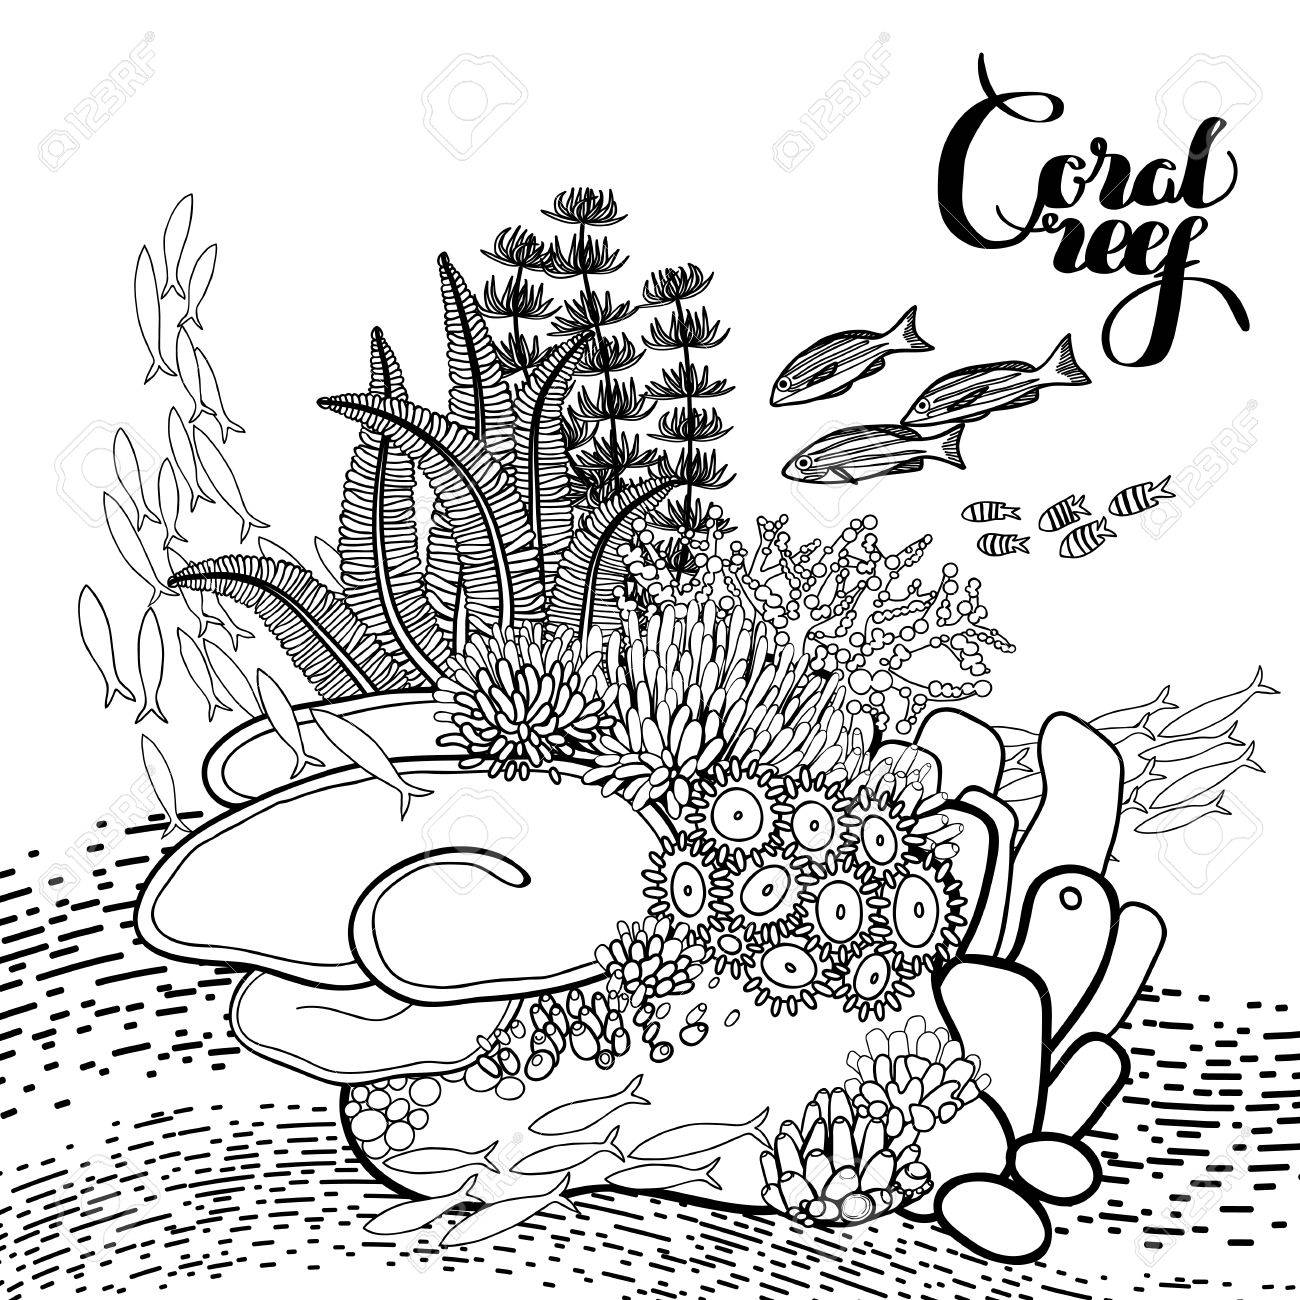 plants coloring page perfect pics of coloring page plant with